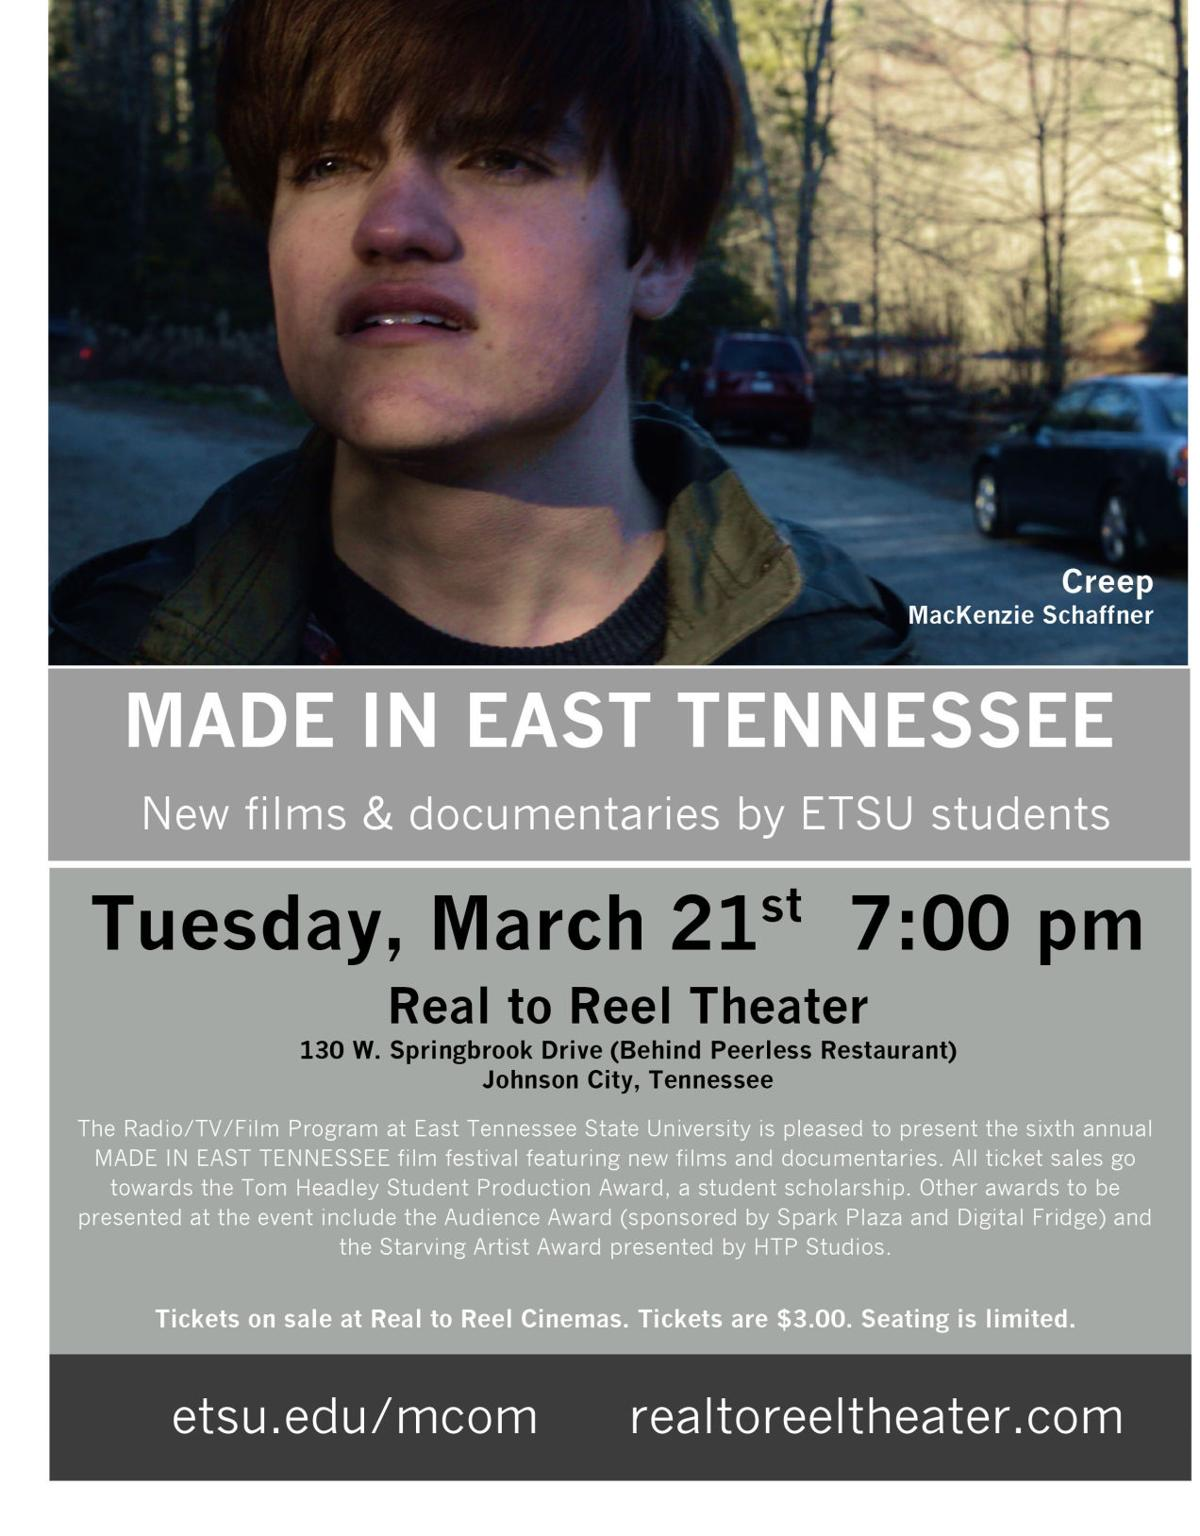 ETSU students' short films to be presented at Real to Reel